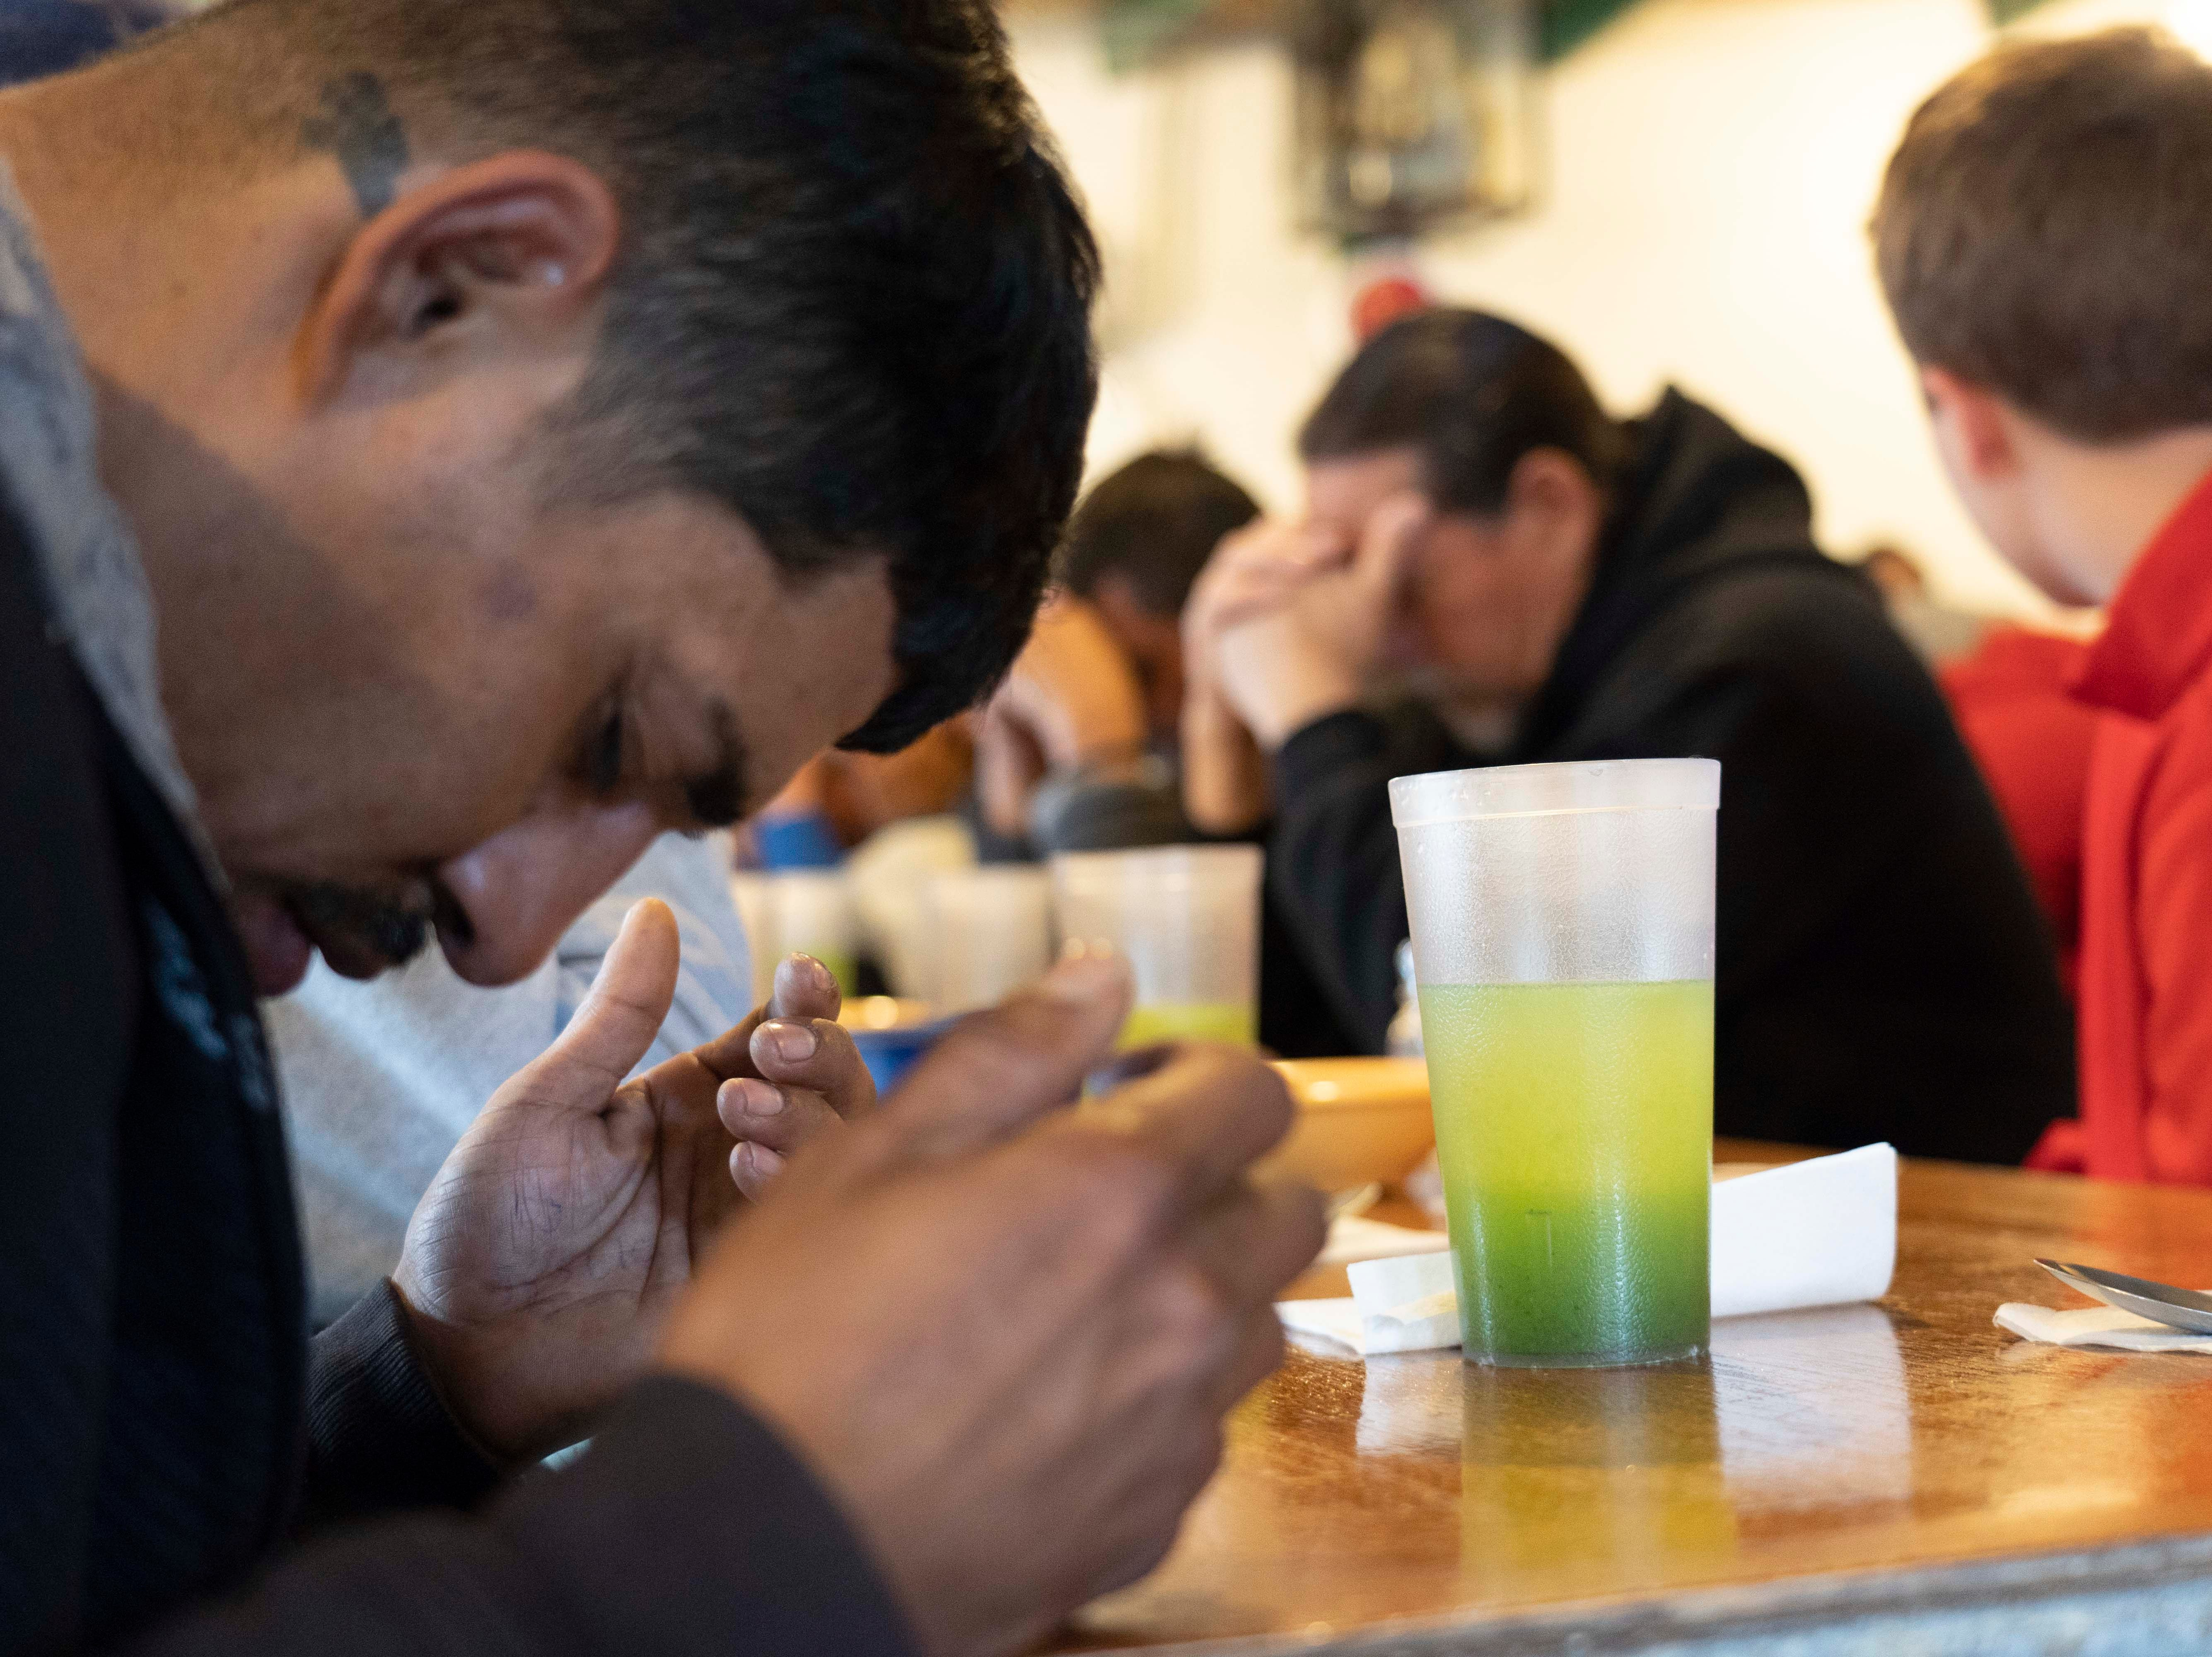 Migrants pray at Kino Border Initiative shelter in Sonora, Mexico after being deported from the United States on Jan. 18, 2019.